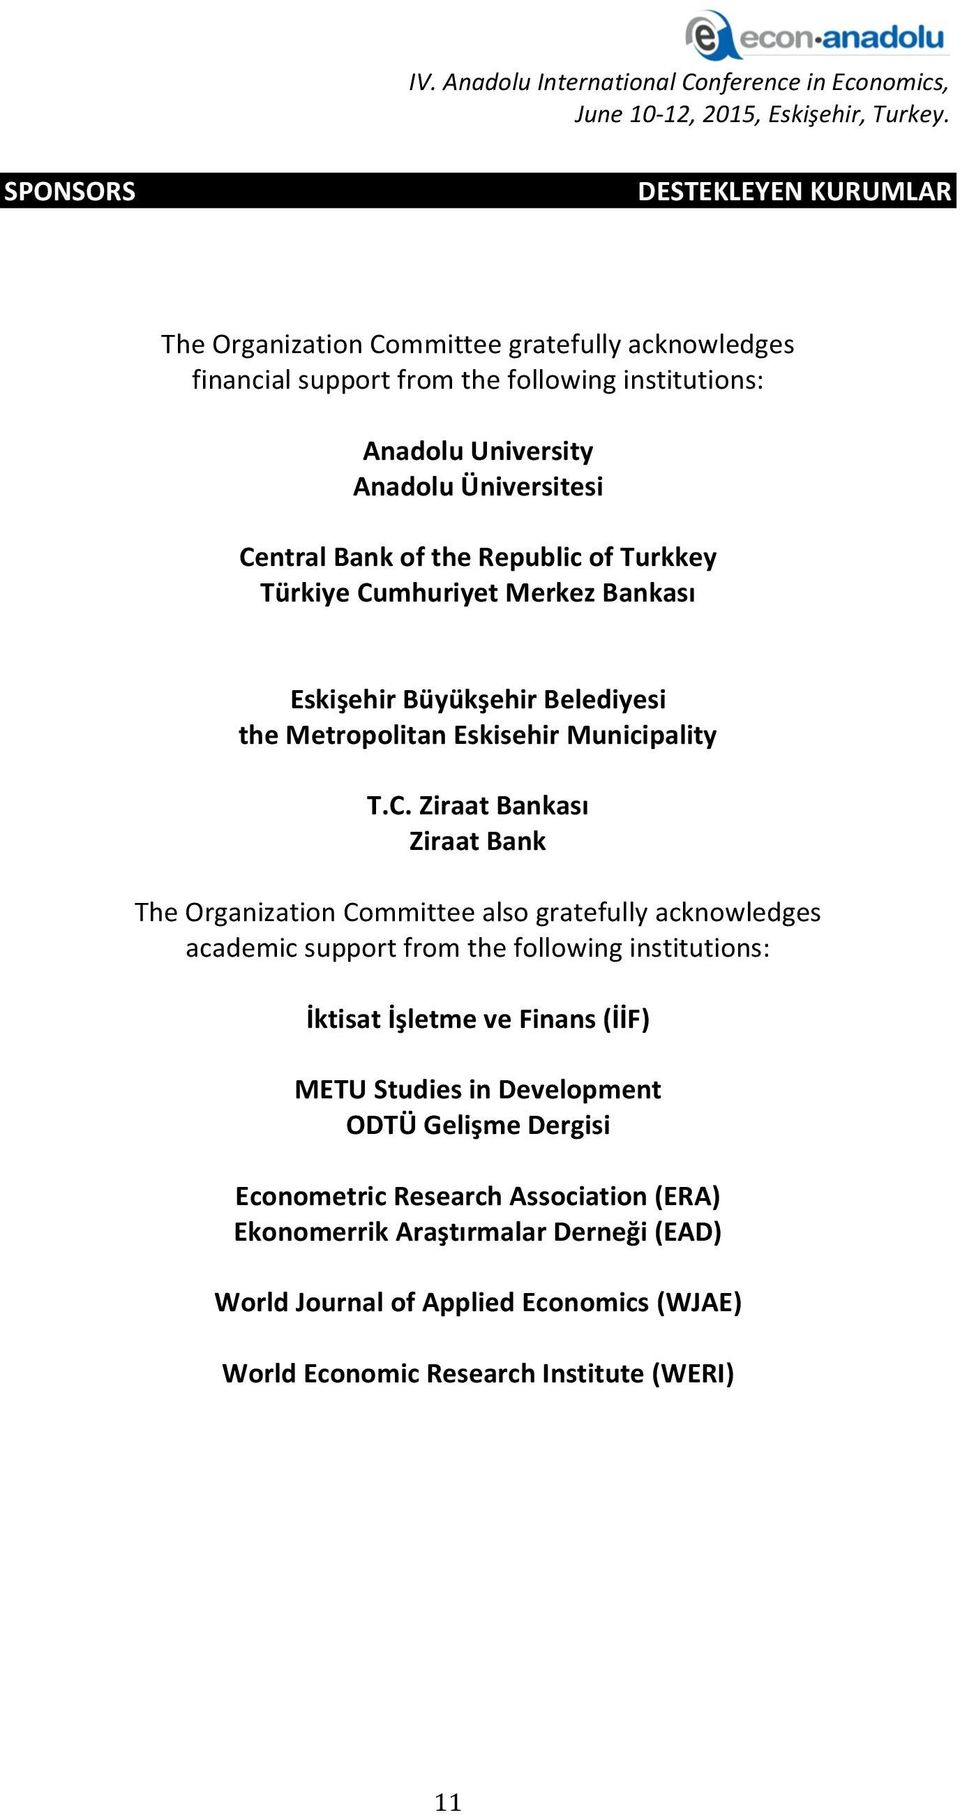 Bank The Organization Committee also gratefully acknowledges academic support from the following institutions: İktisat İşletme ve Finans (İİF) METU Studies in Development